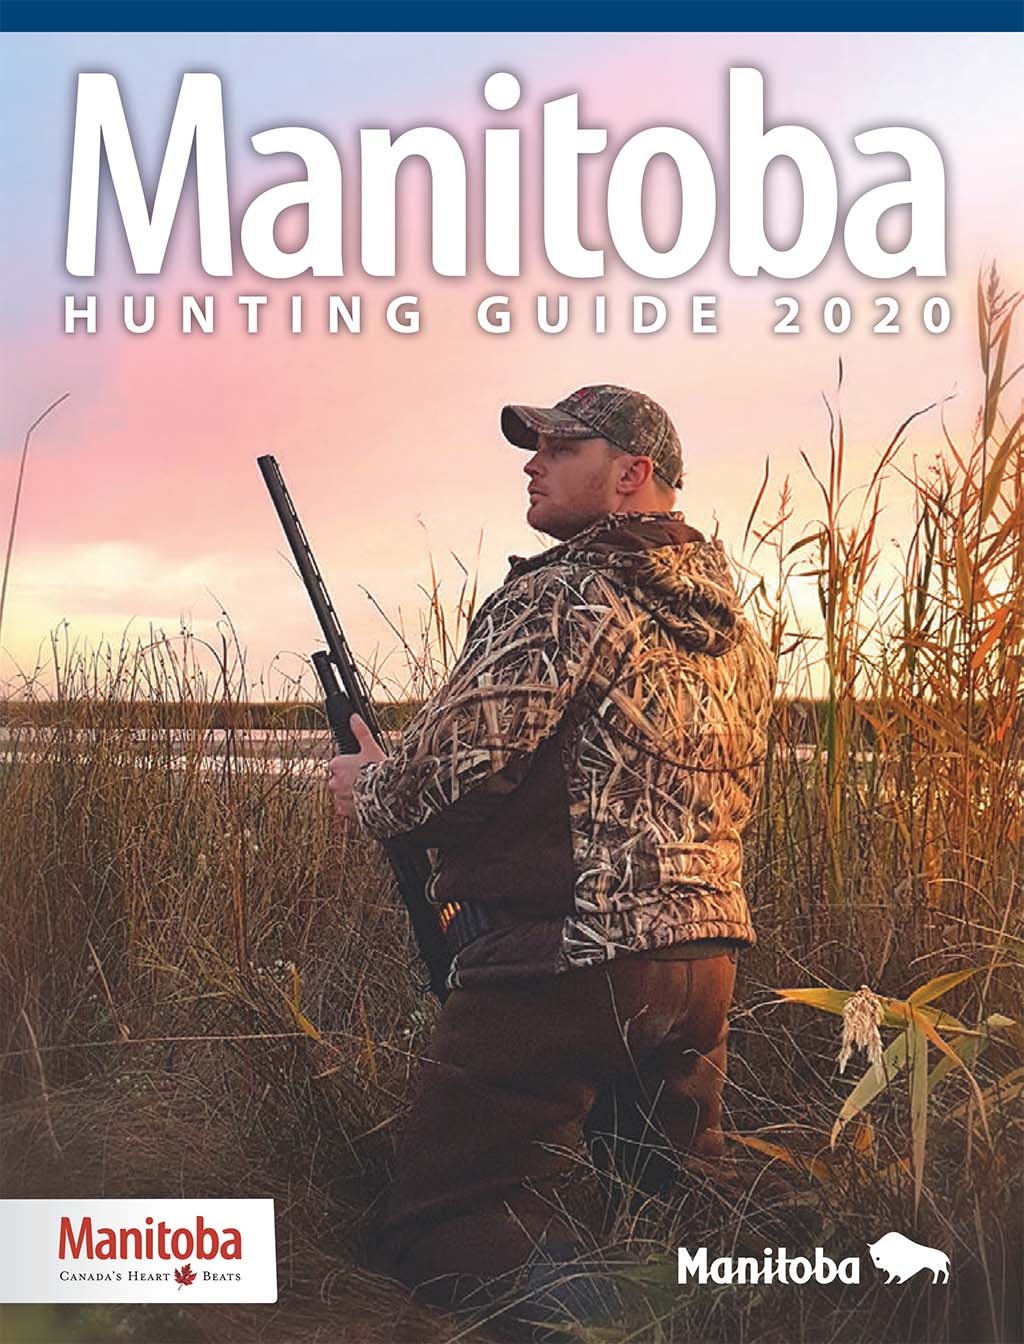 Hunting Guide 2020